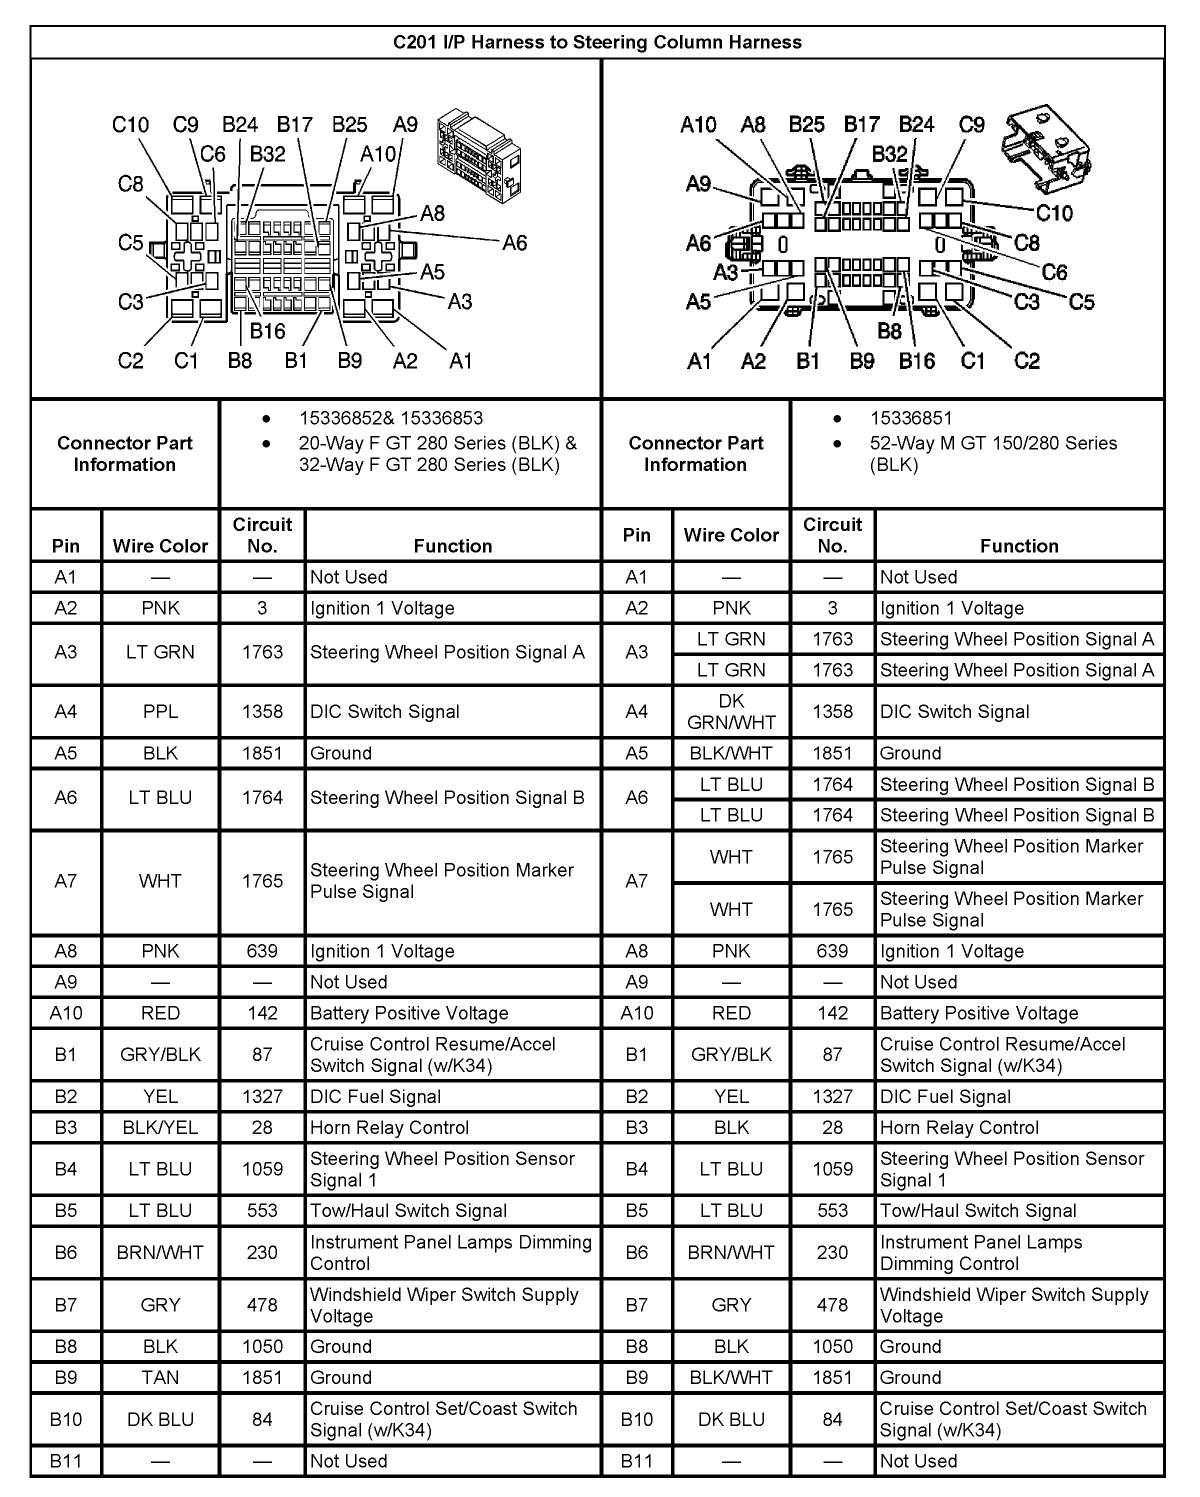 stereo wiring diagram for 2001 chevy impala 2001 gmc yukon radio wiring diagram | free wiring diagram stereo wiring diagram for 2001 yukon #9